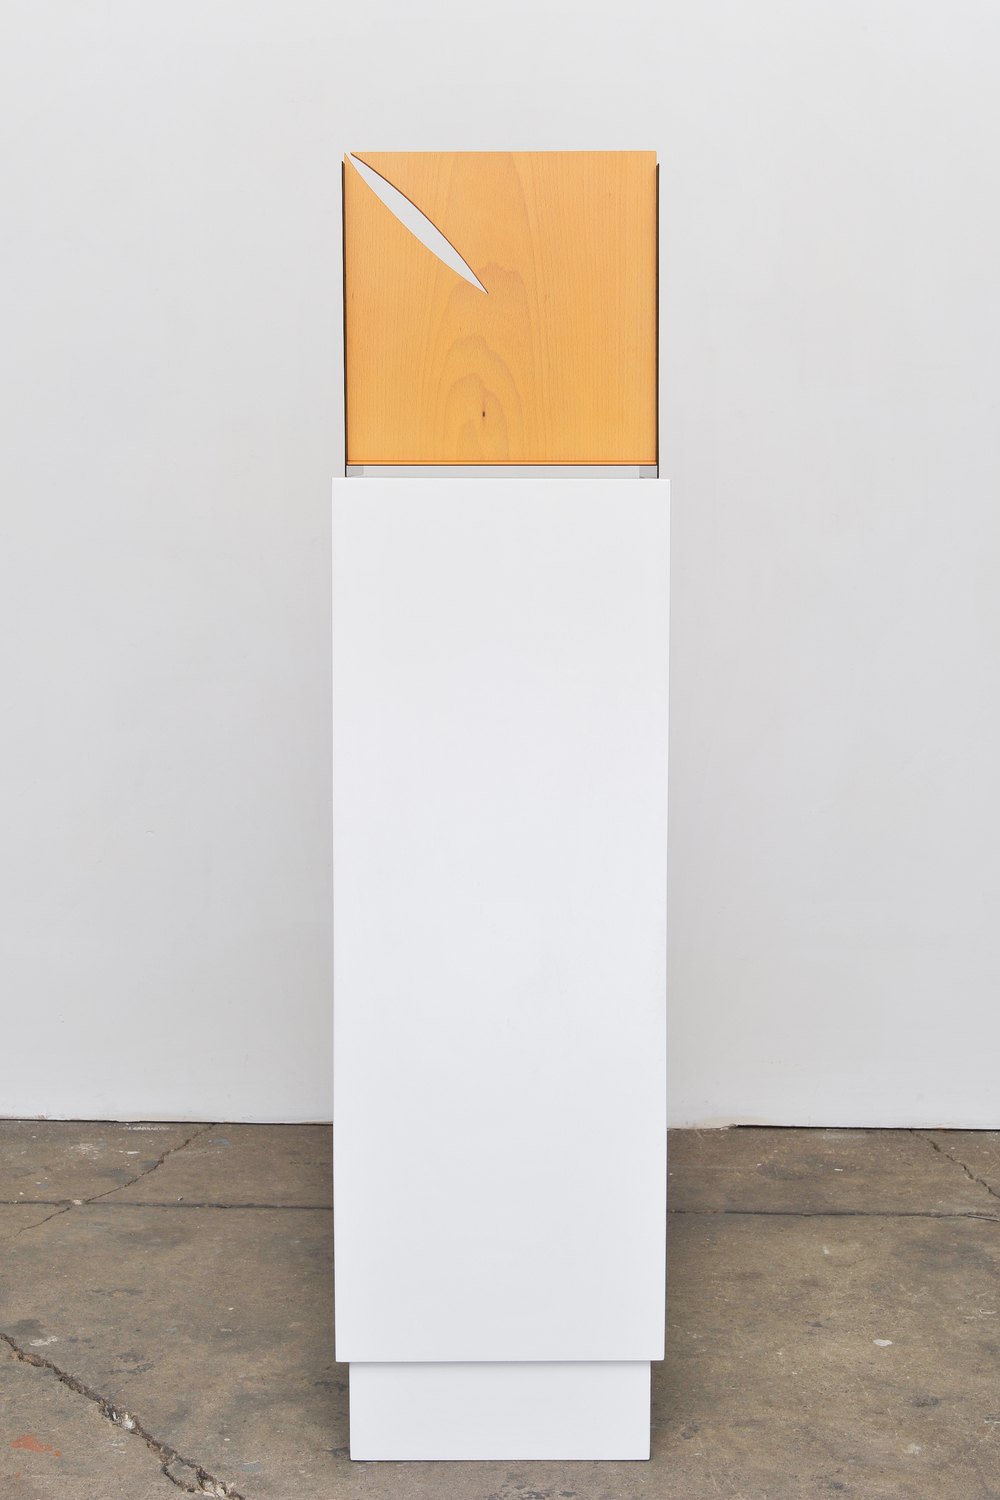 Standing Plaque (Four sides) 2014 Euro-beech hardwood, steel, copper rivets, enamel, wax 29.2 x 28.4 x 27.9 cm / 11.5 x 11.2 x 11 in Plinth: 91.4 x 30.4 x 30.4 cm / 36 x 12 x 12 in